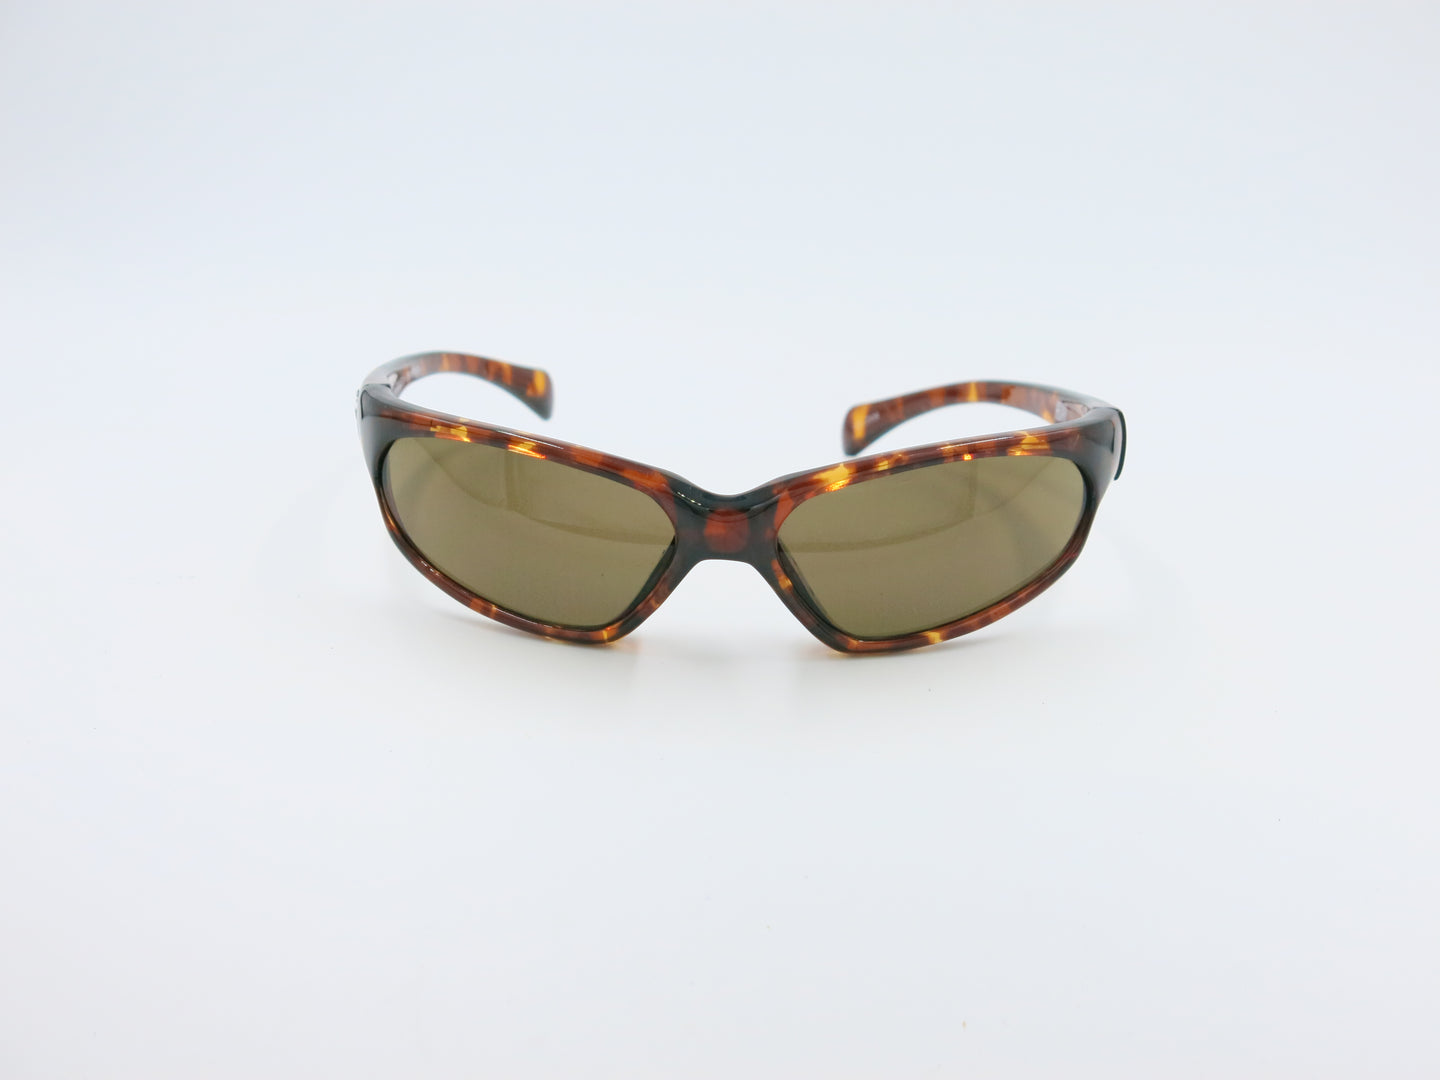 Gargoyles Sunglasses Heat Tortoise | Sunglasses by Gargoyles | Friedman & Sons